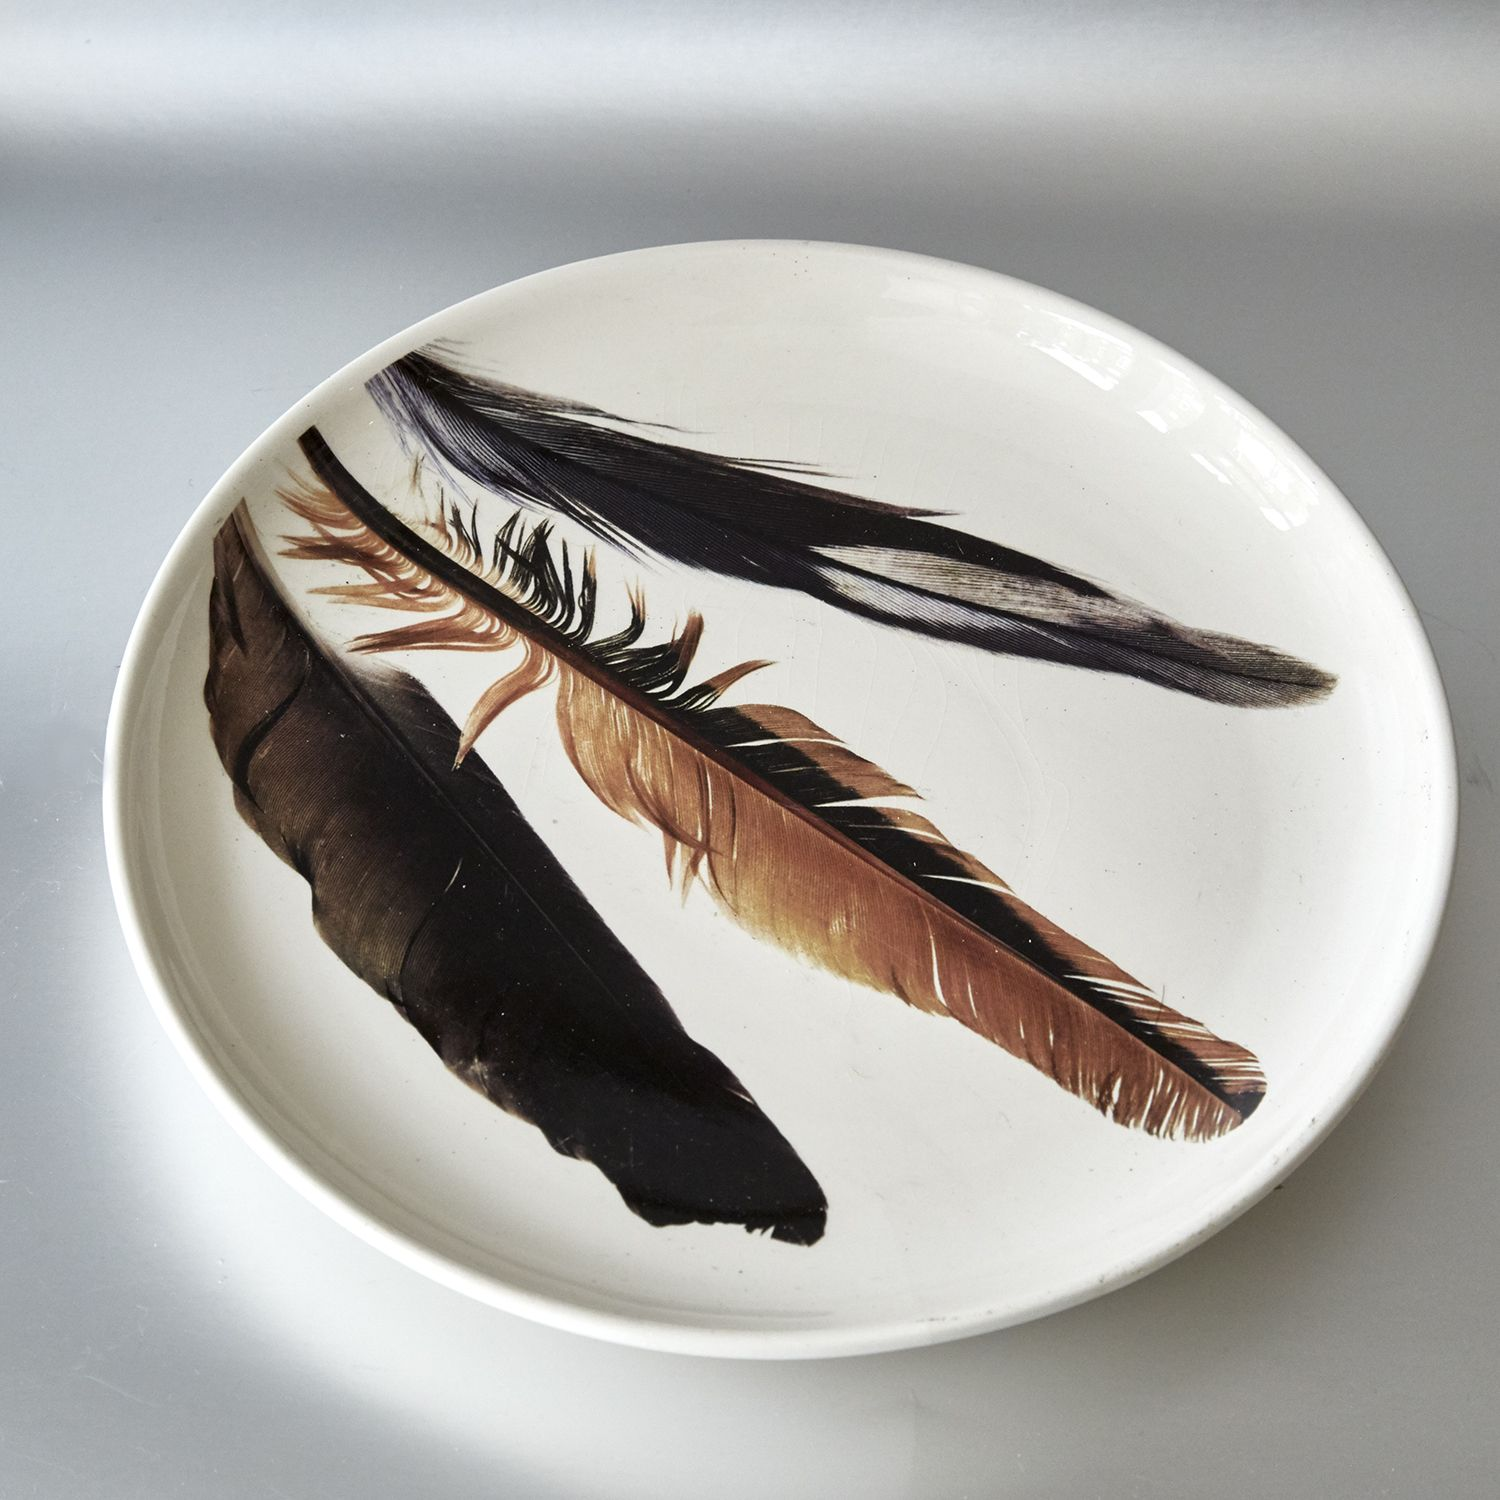 Feather Plate - Unusual dinner plate - Can also be used on the wall as & Feather Plate: - Unusual dinner plate - Can also be used on the wall ...